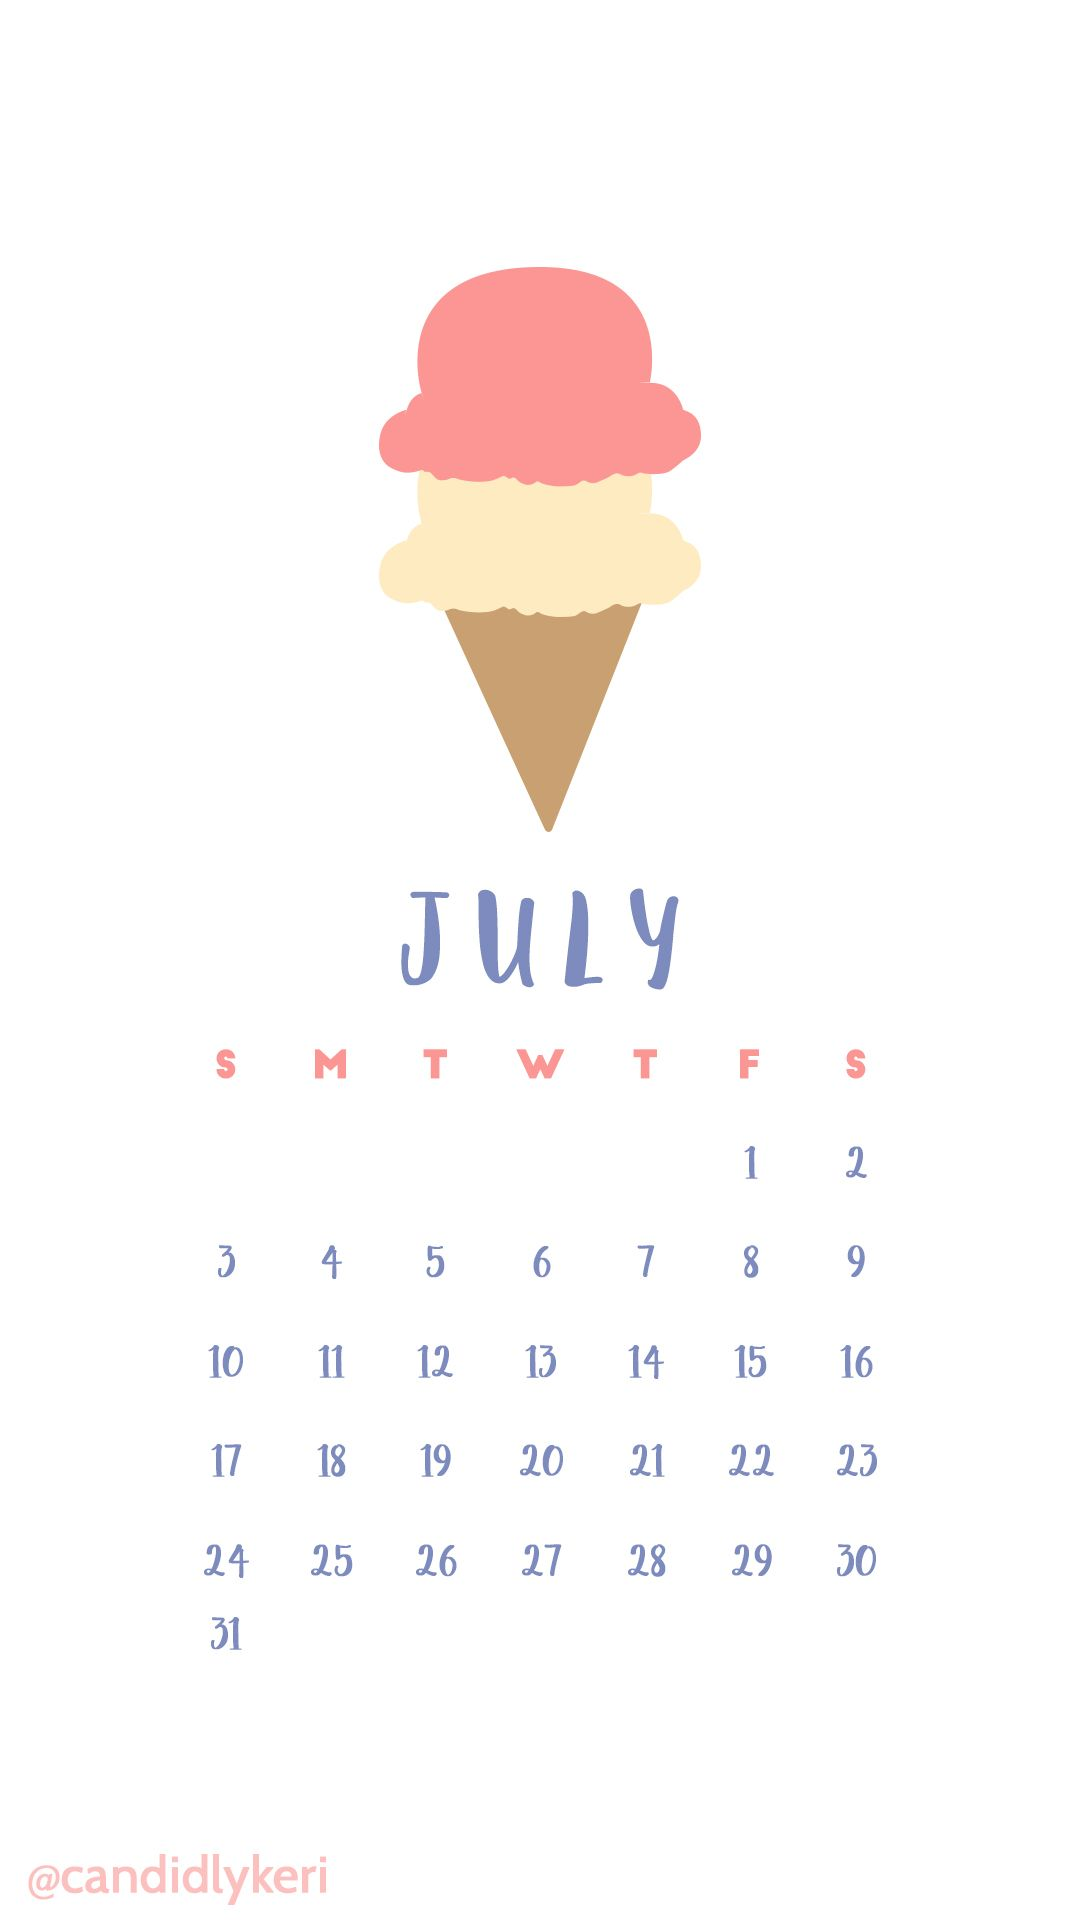 cute pastel cartoon ice cream pink july 2016 calendar wallpaper free download for iphone android or